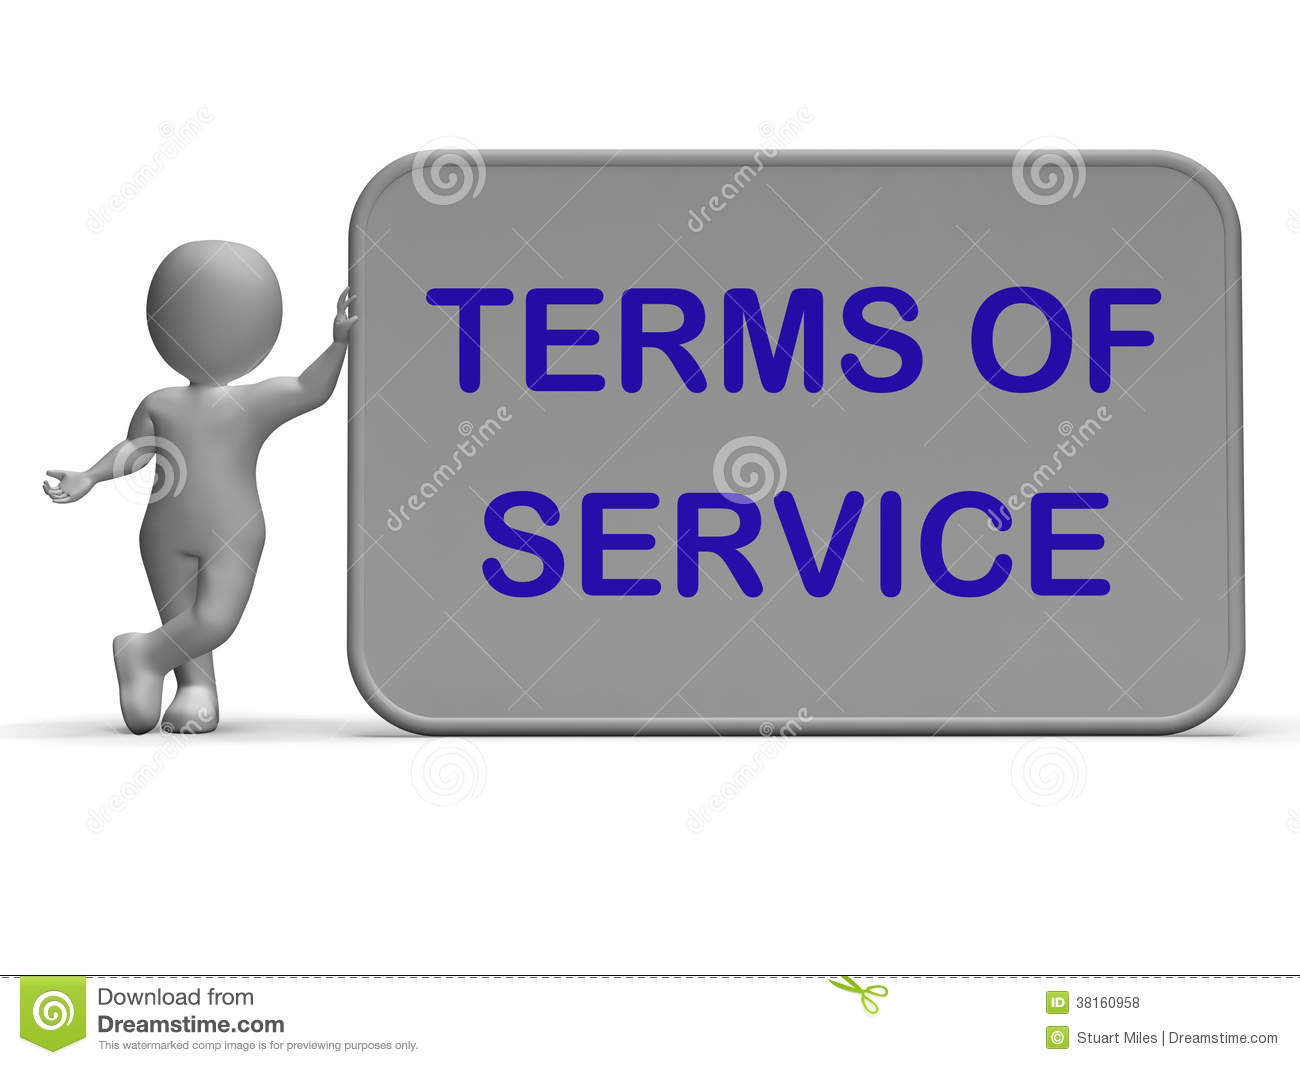 Dating site terms of service